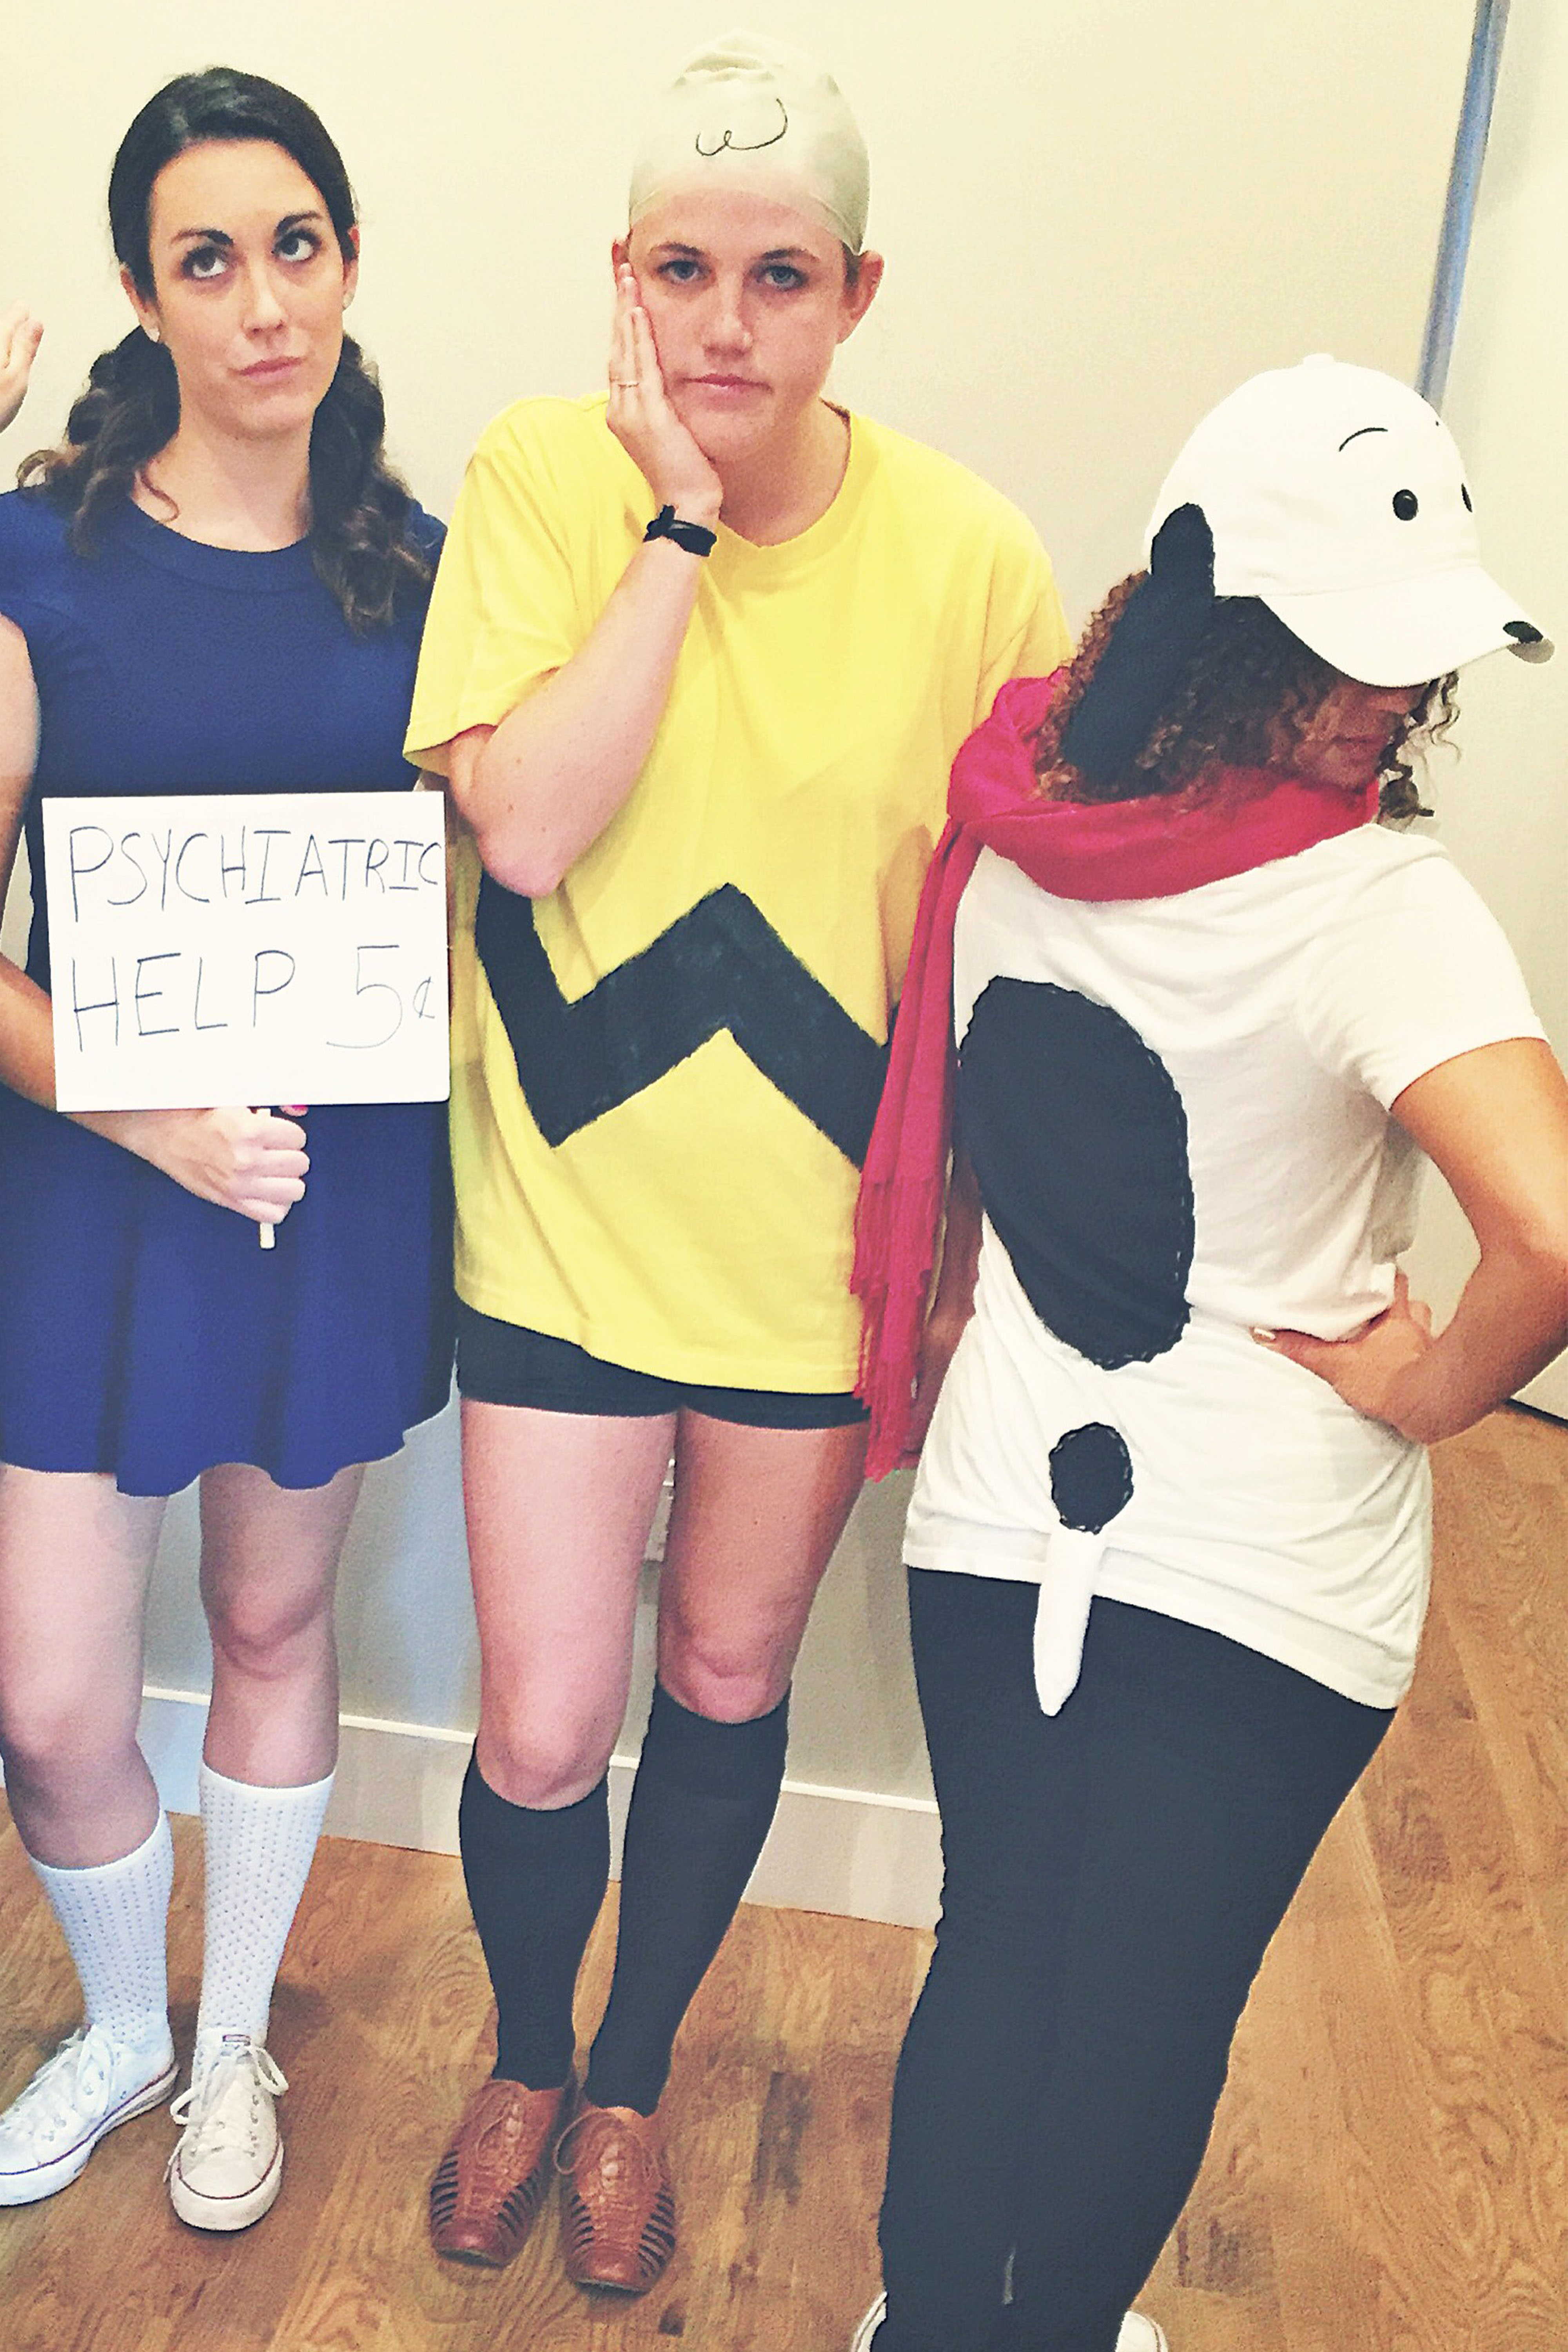 28 easy diy character costumes ankaperla easy diy character costumes ankaperla do it yourself character costumes ankaperla solutioingenieria Image collections